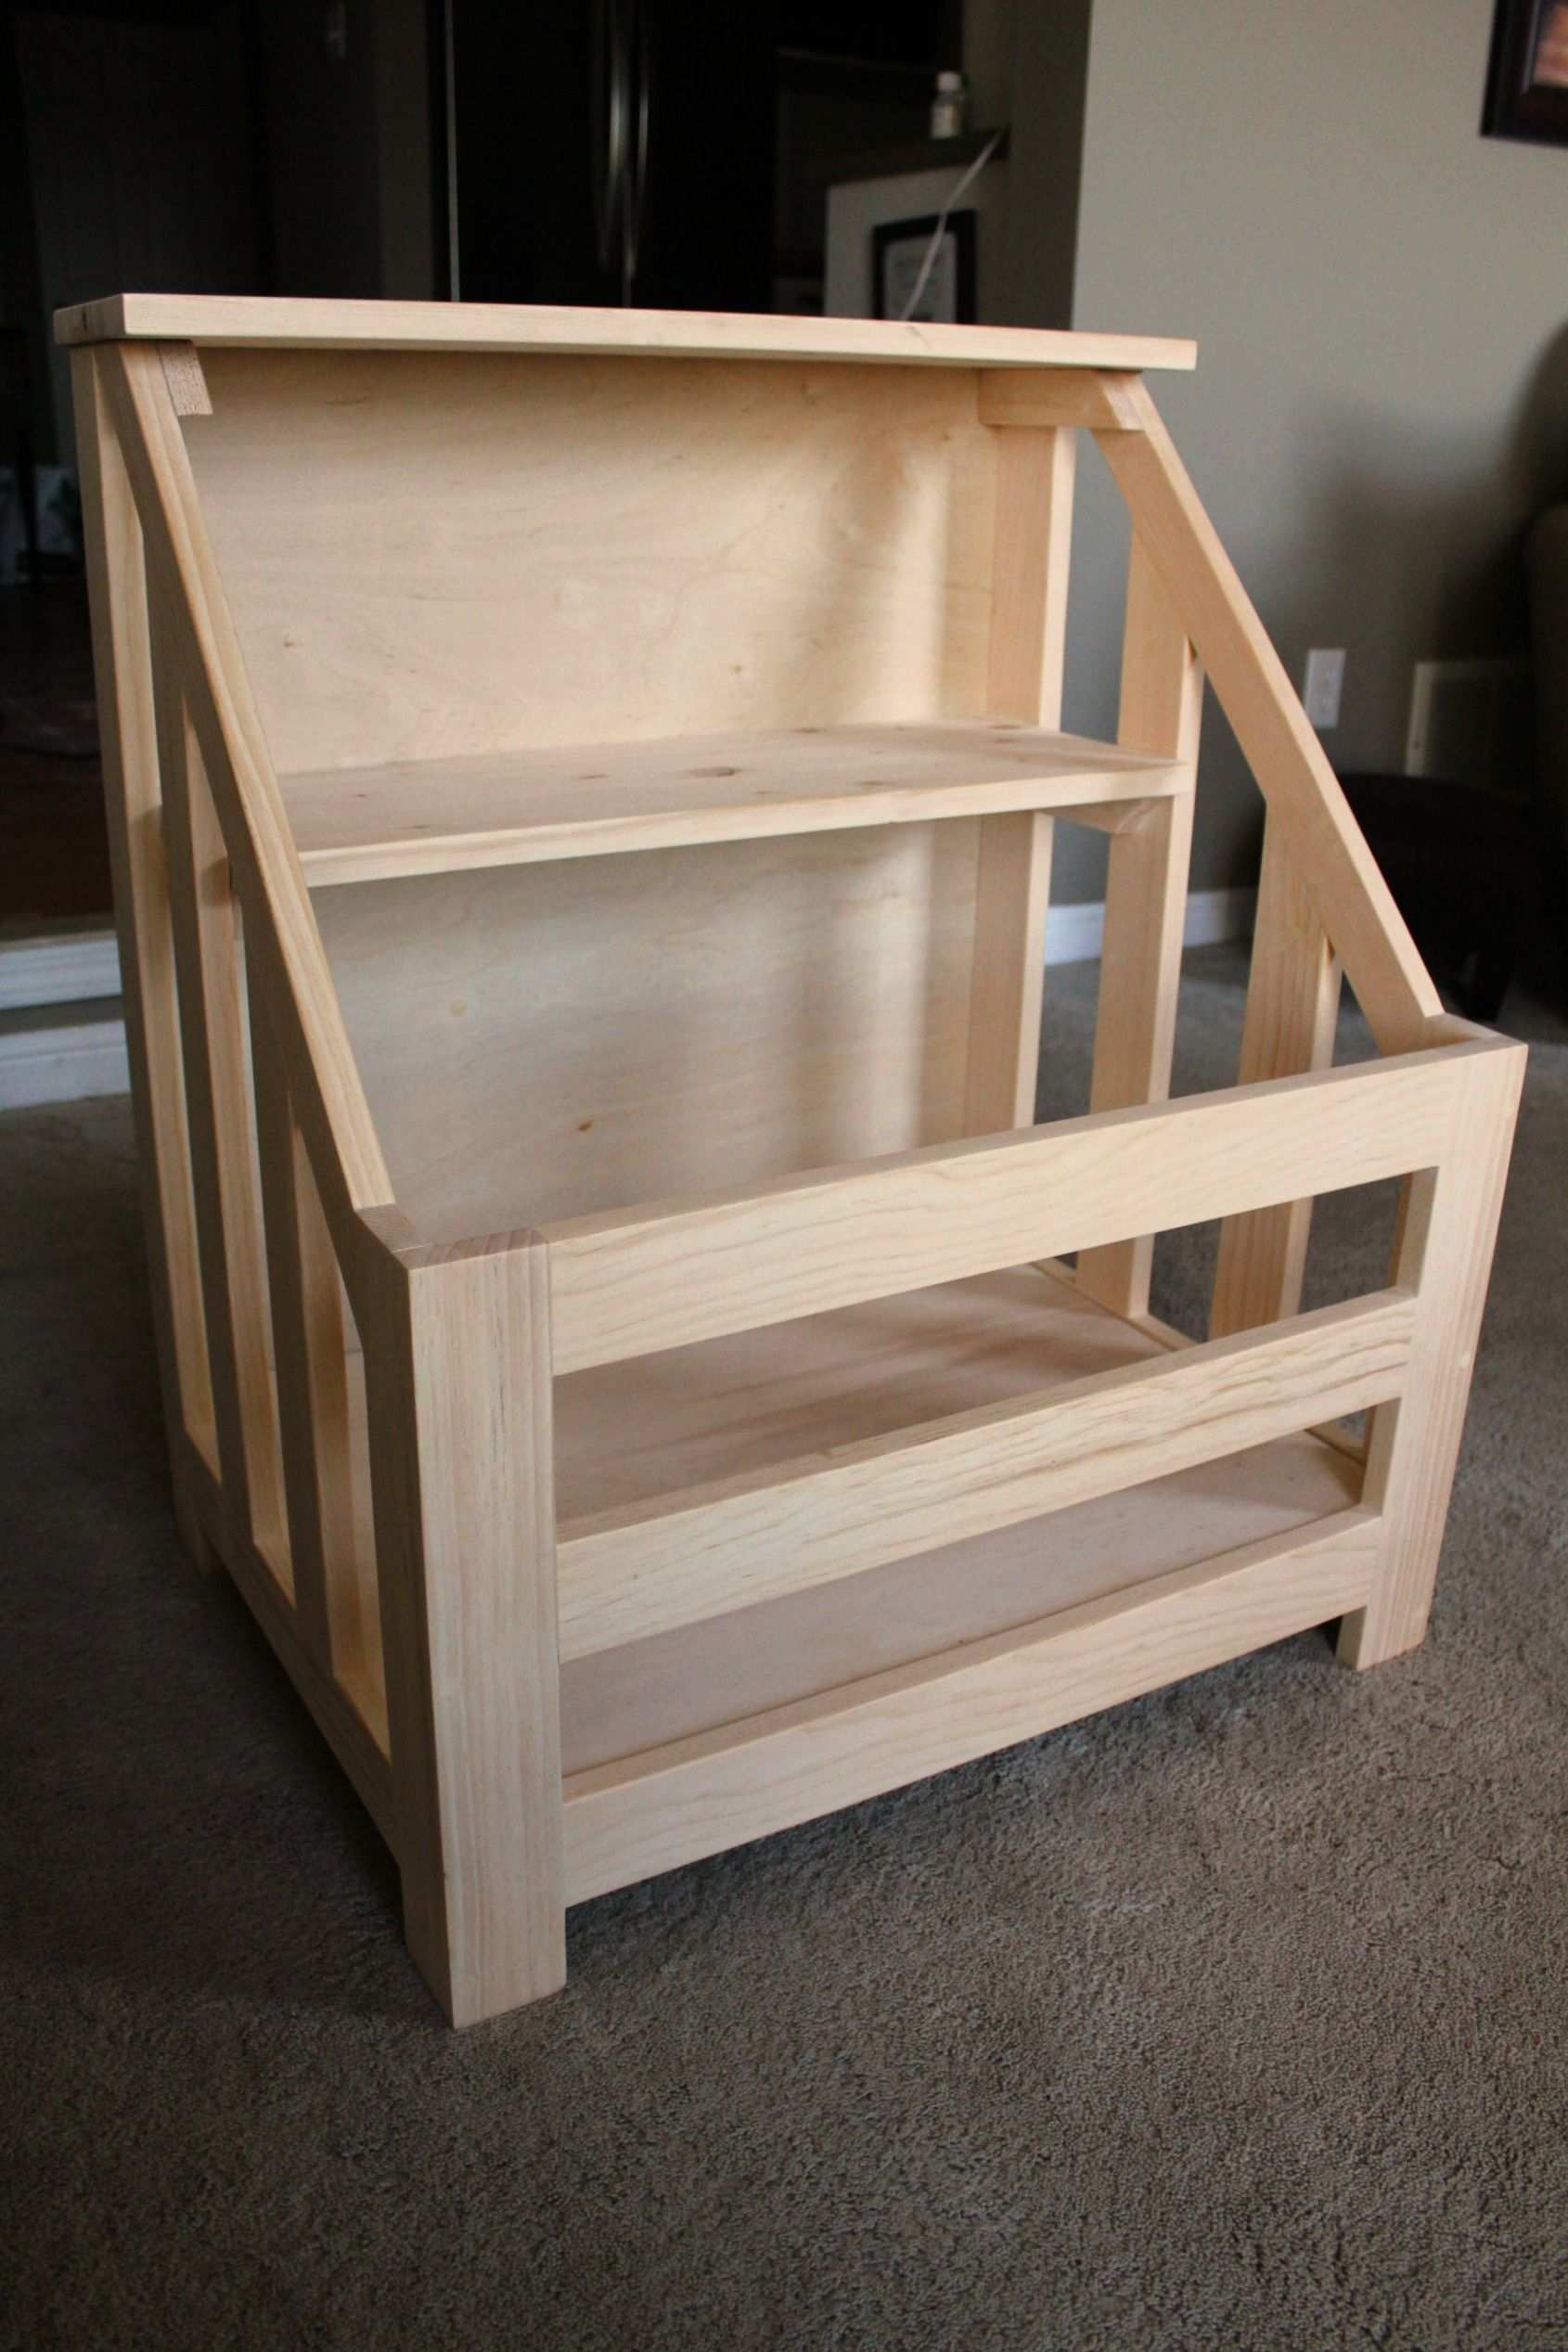 Diy Toy Box Bookshelf I Plan To Recreate This Using Pallet Wood Changing Design To Suit Adding A Hinged Lid Fo Bookshelves Diy Diy Toy Storage Diy Toy Box